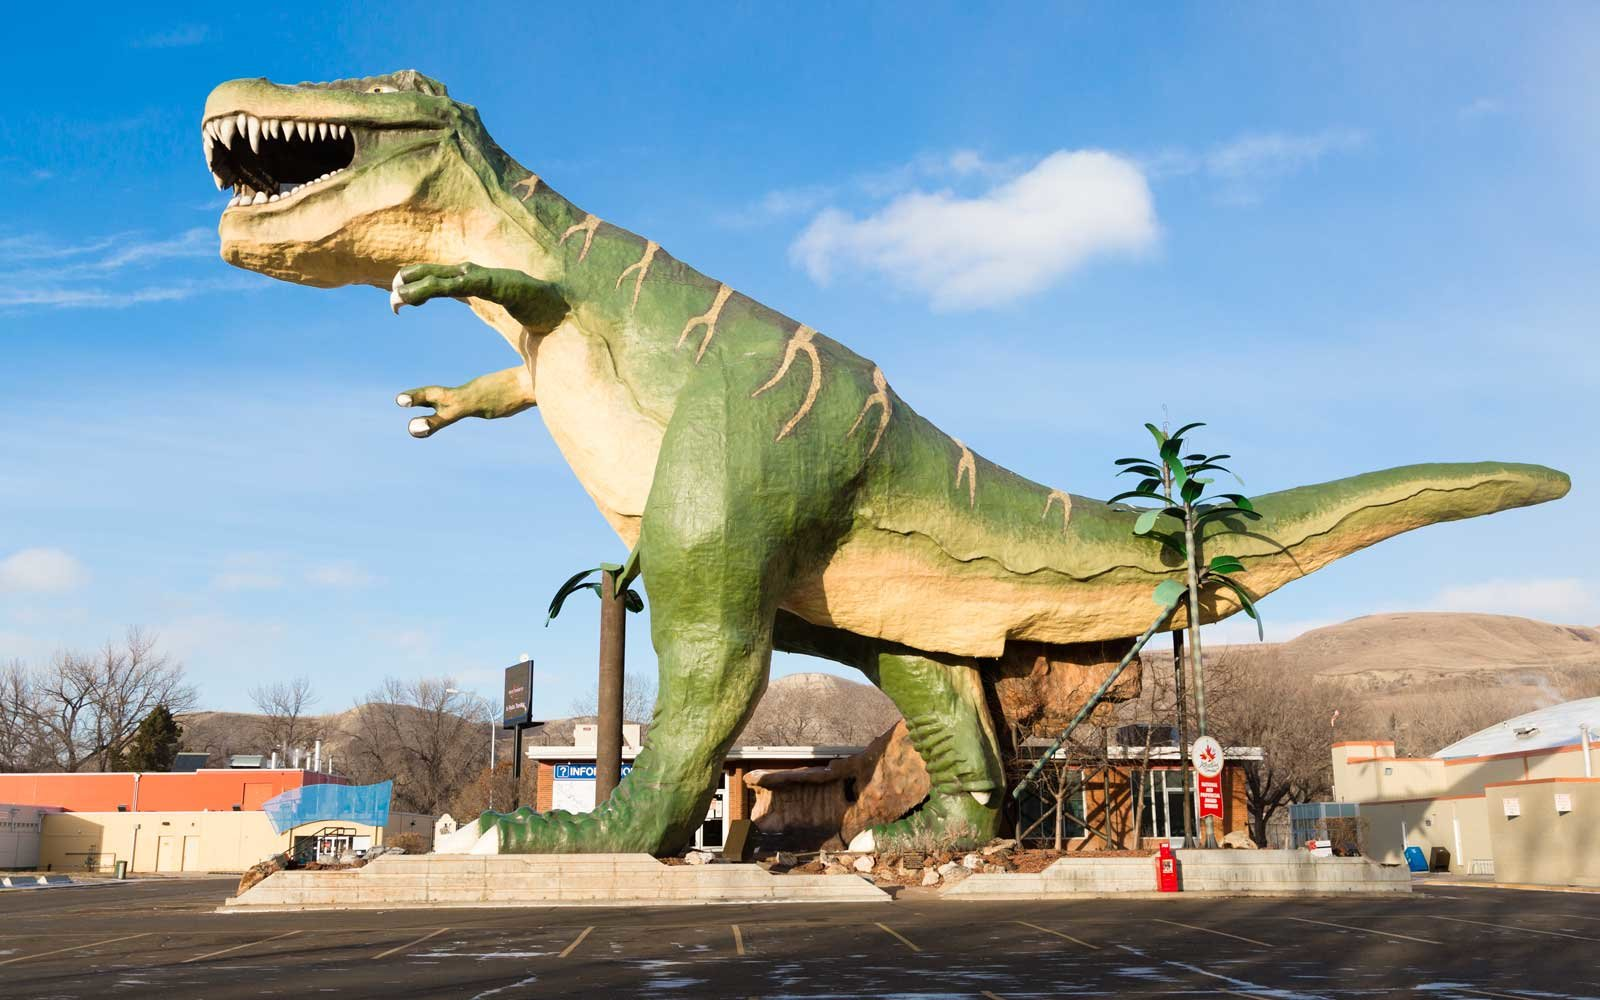 "The ""World's Largest Dinosaur"" is the name of a model Tyrannosaurus rex located in the town of Drumheller, Alberta, Canada."